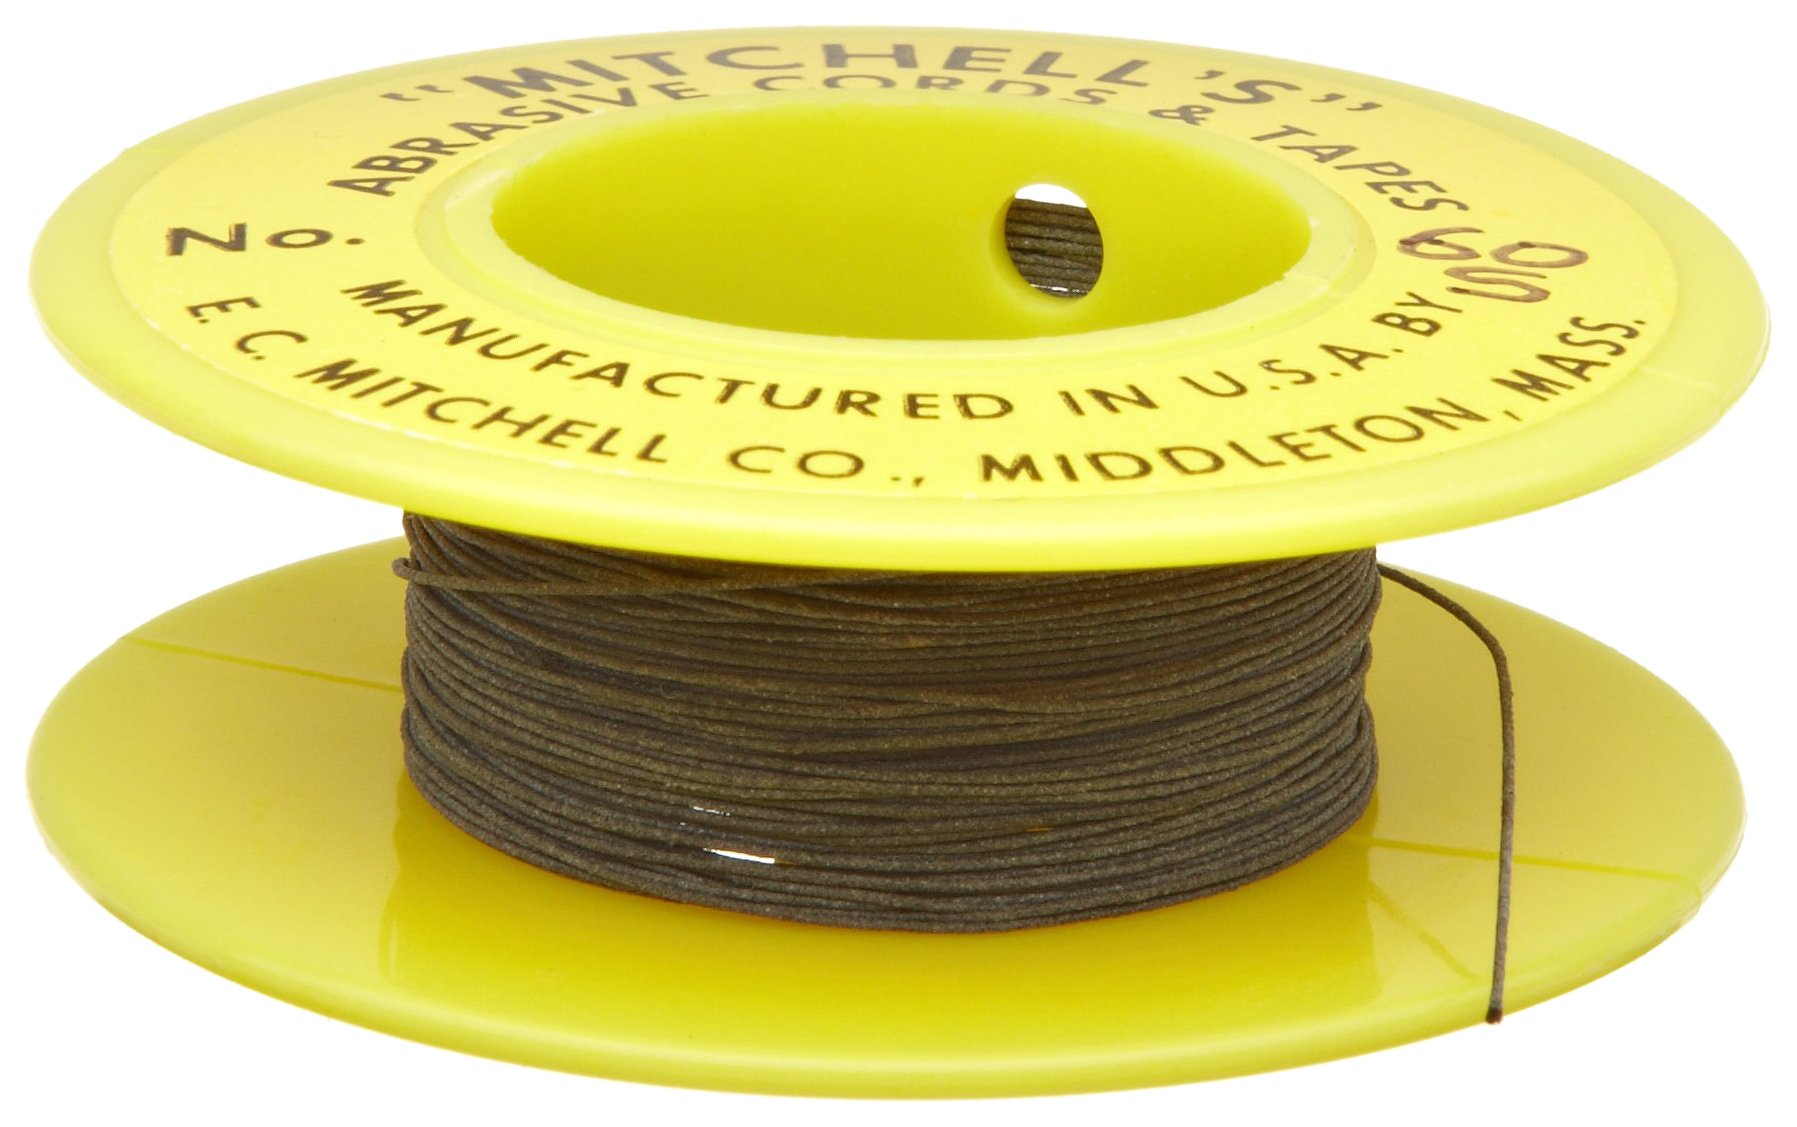 Mitchell Abrasives 60-S Round Abrasive Cord, Silicon Carbide 200 Grit .015'' Diameter x 25 Feet by Mitchell Abrasives